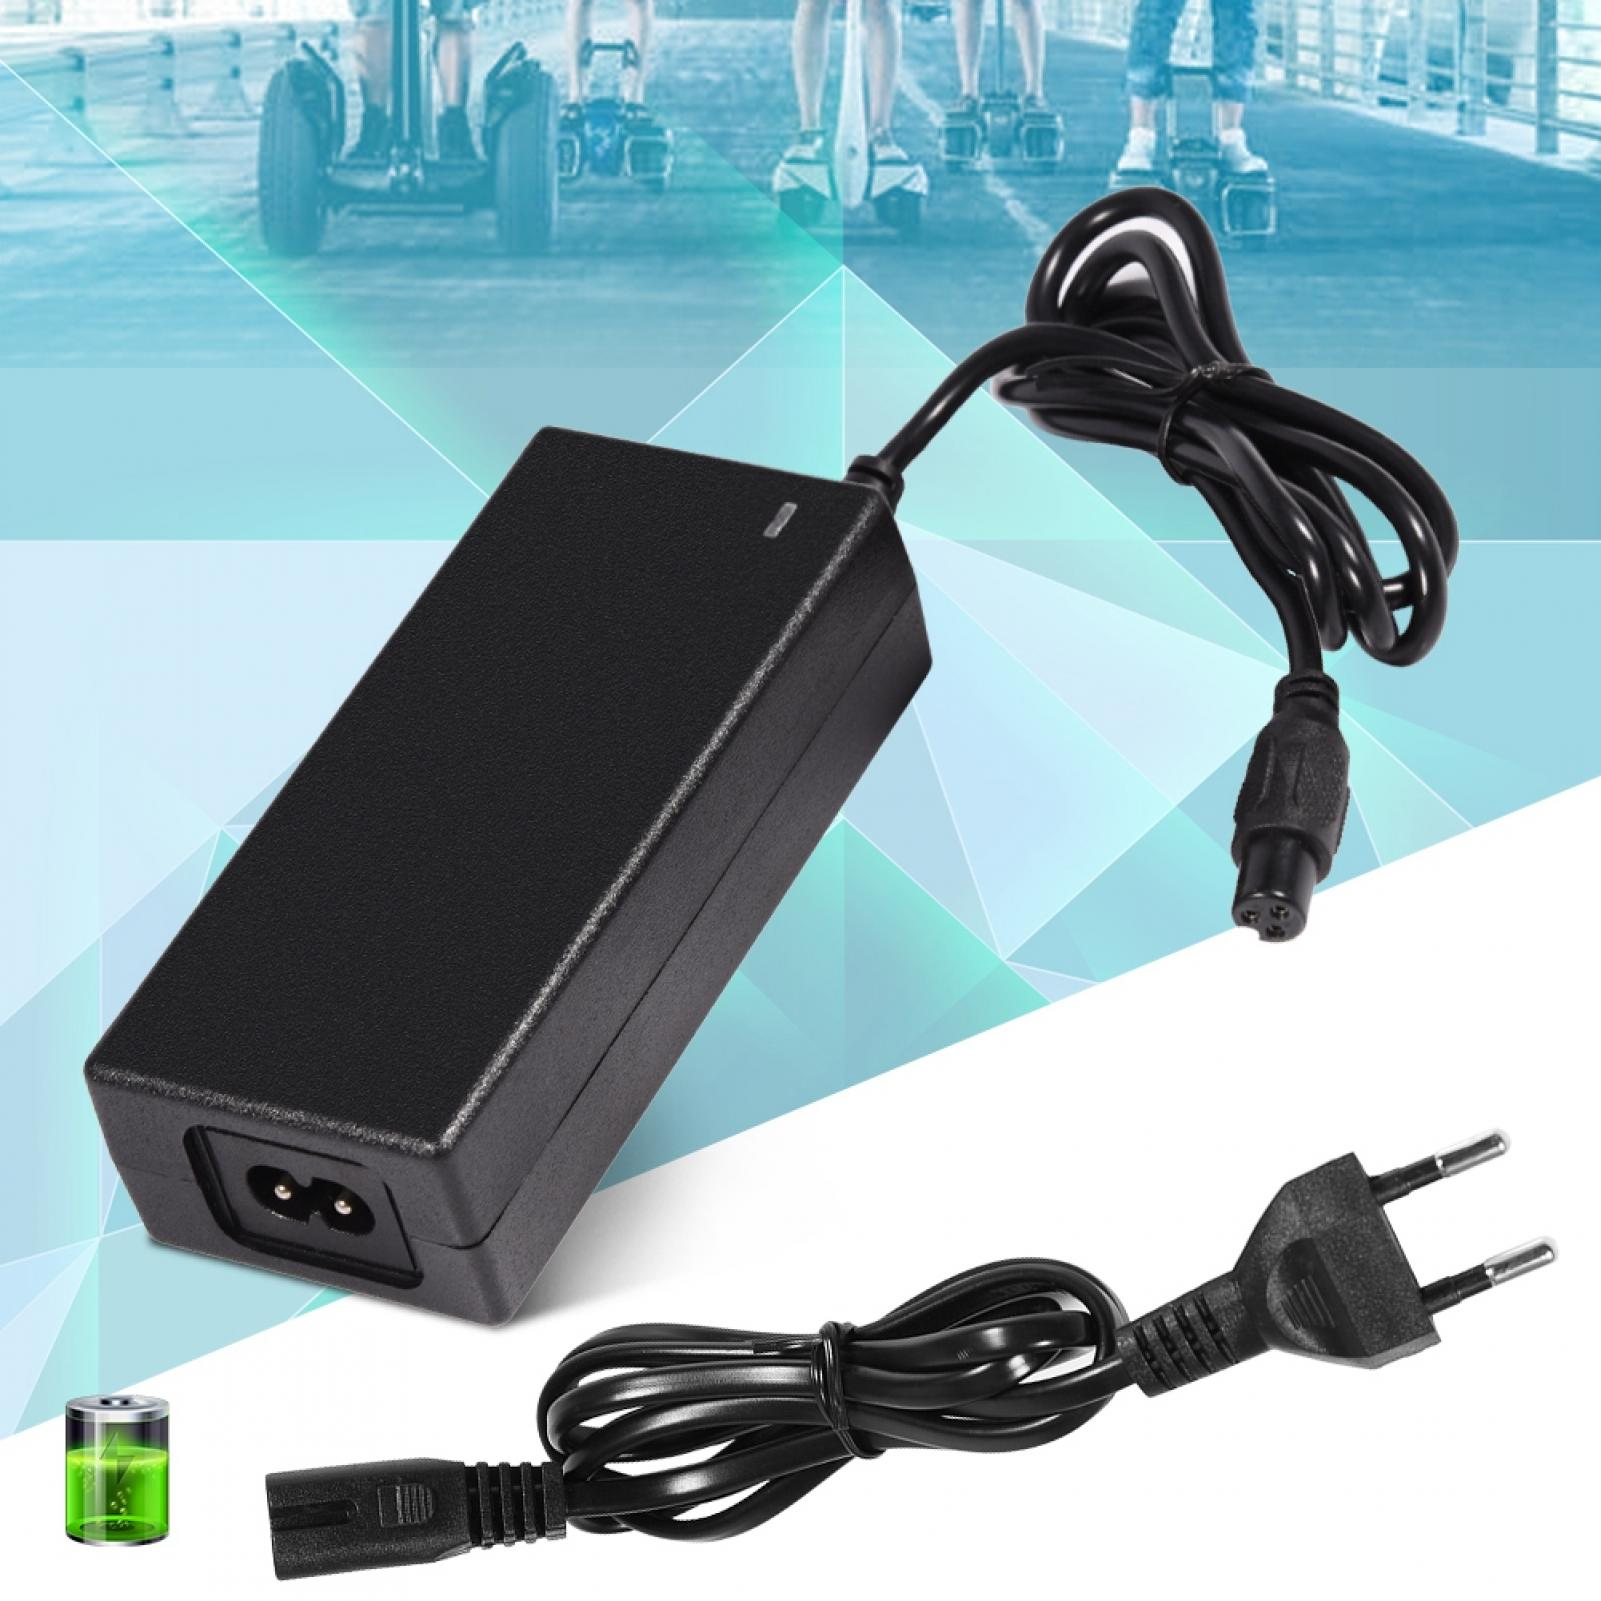 42V-2A-Universal-Battery-Charger-for-Hoverboard-Smart-Balance-Scooter-Hoverboard thumbnail 17